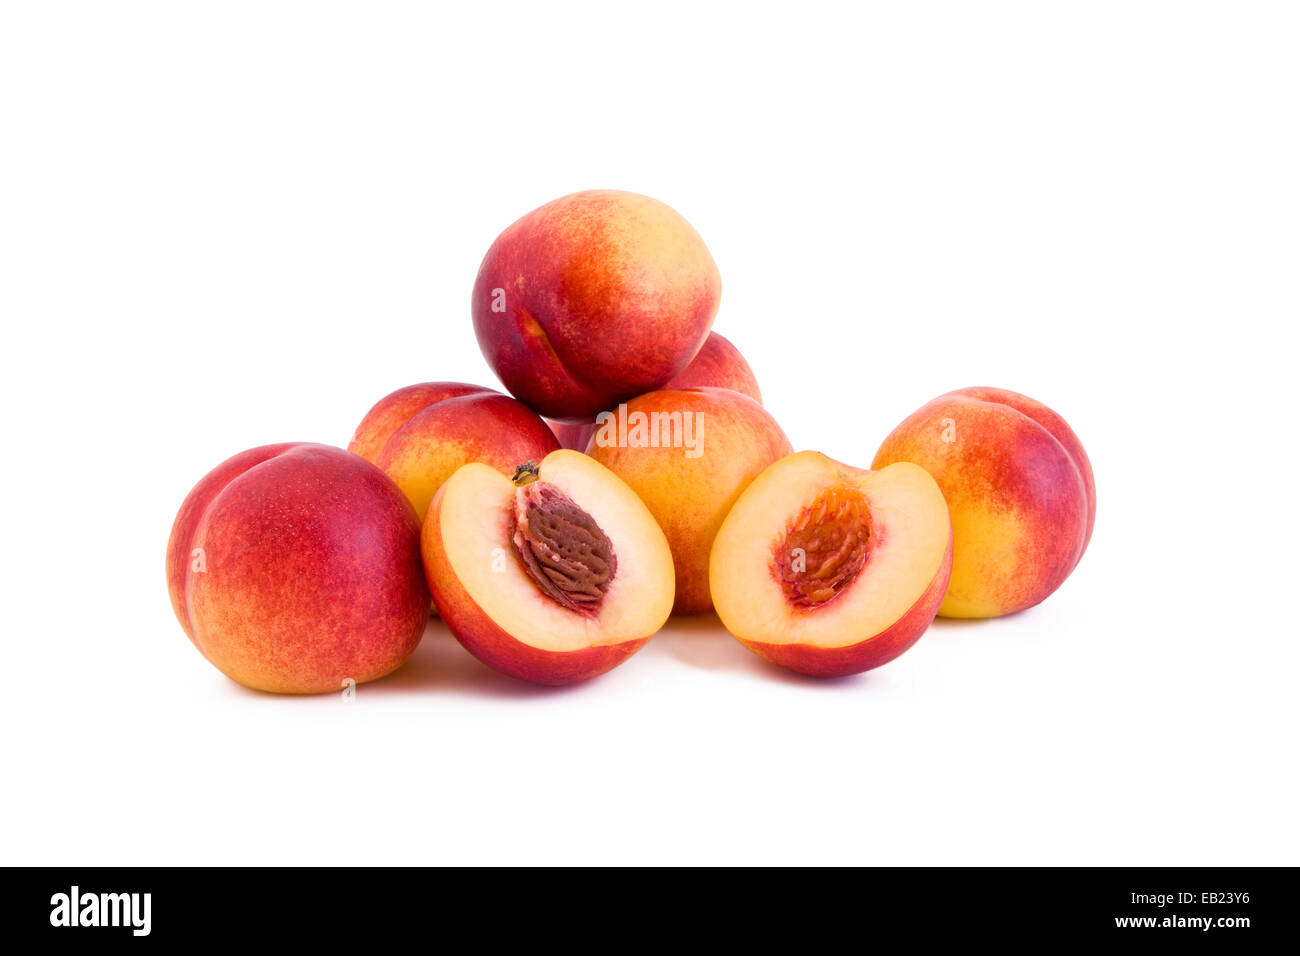 Red peach, fruit isolated on white background - Stock Image